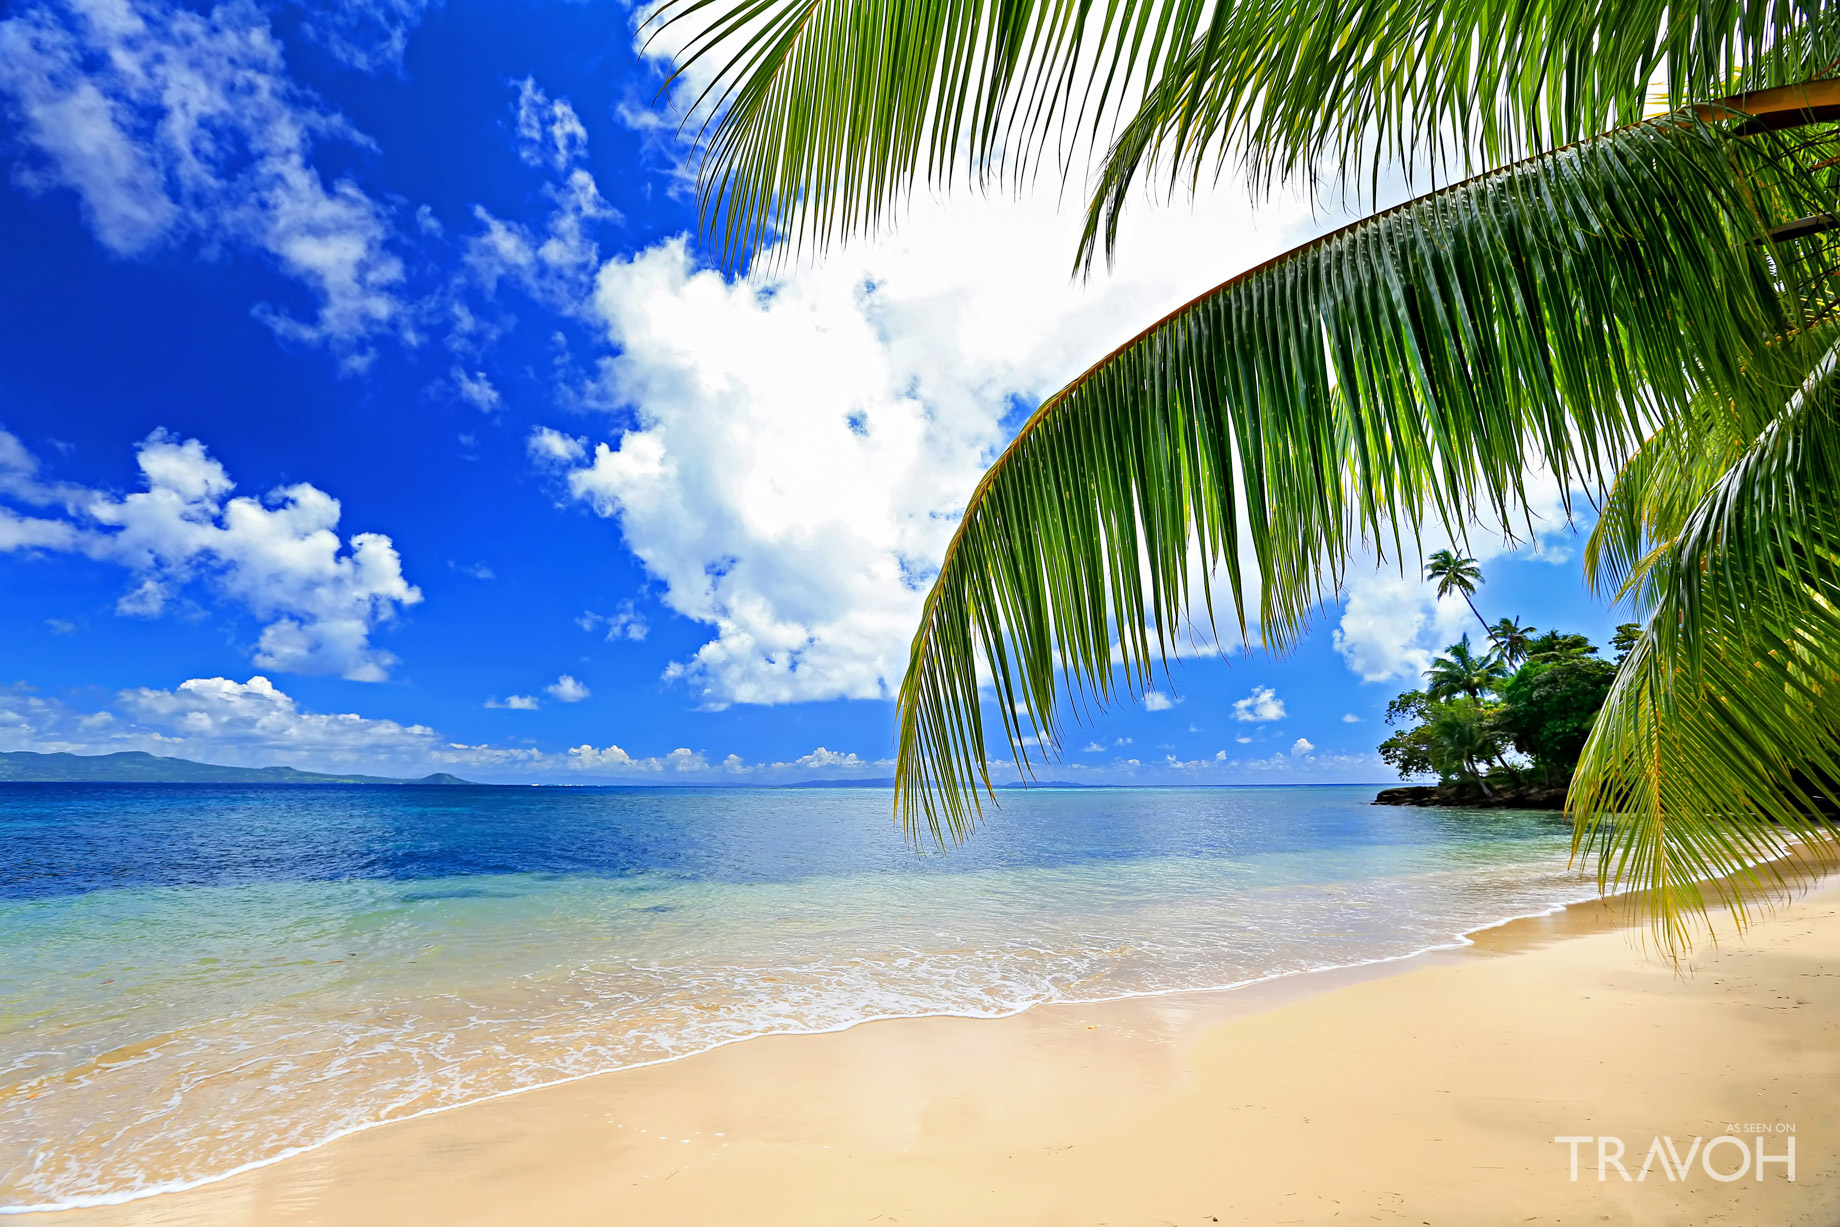 Matangi Private Island Resort – Exploring 10 of the Top Beach Locations on the Islands of Fiji